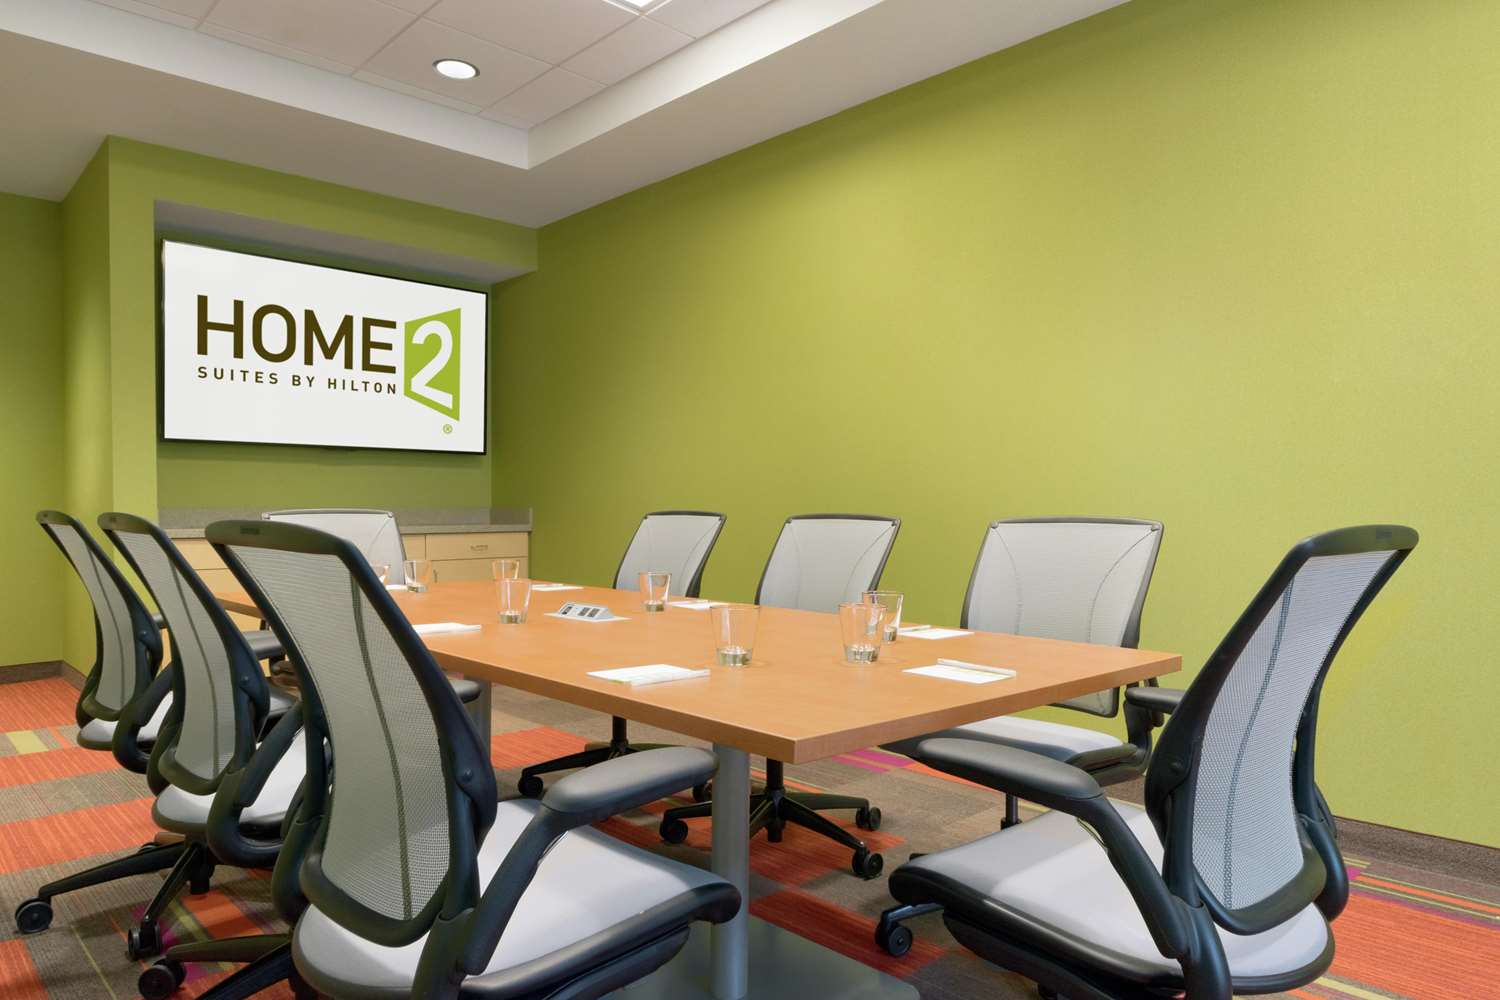 Meeting Facilities - Home2 Suites by Hilton near Chapel Hill Durham